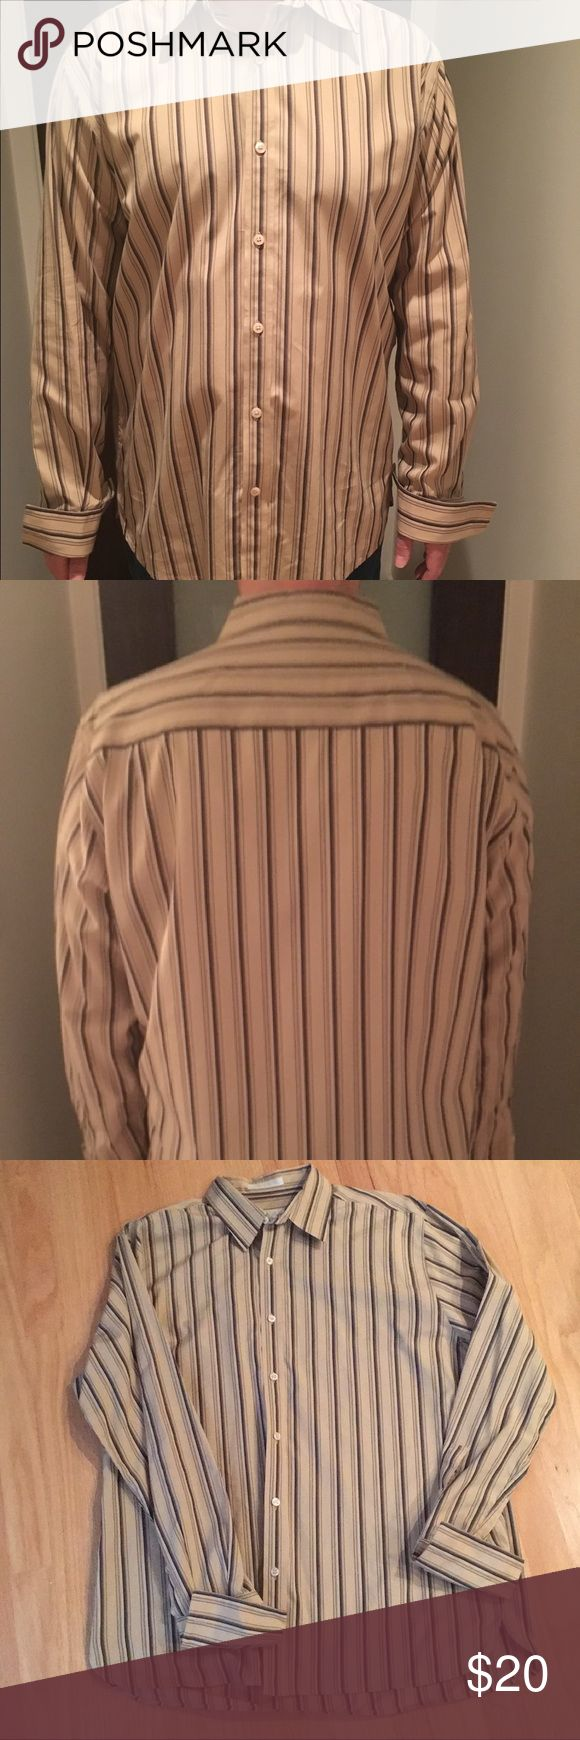 Perry Ellis (brand) Men's Cuffed Sleeve Shirt 100% Cotton, in excellent worn condition. No rips or stains. Sleeves are French cuffed, shirt did not come with cufflinks, buyer must use their own cufflinks. From a pet and smoke free home. Perry Ellis Shirts Dress Shirts